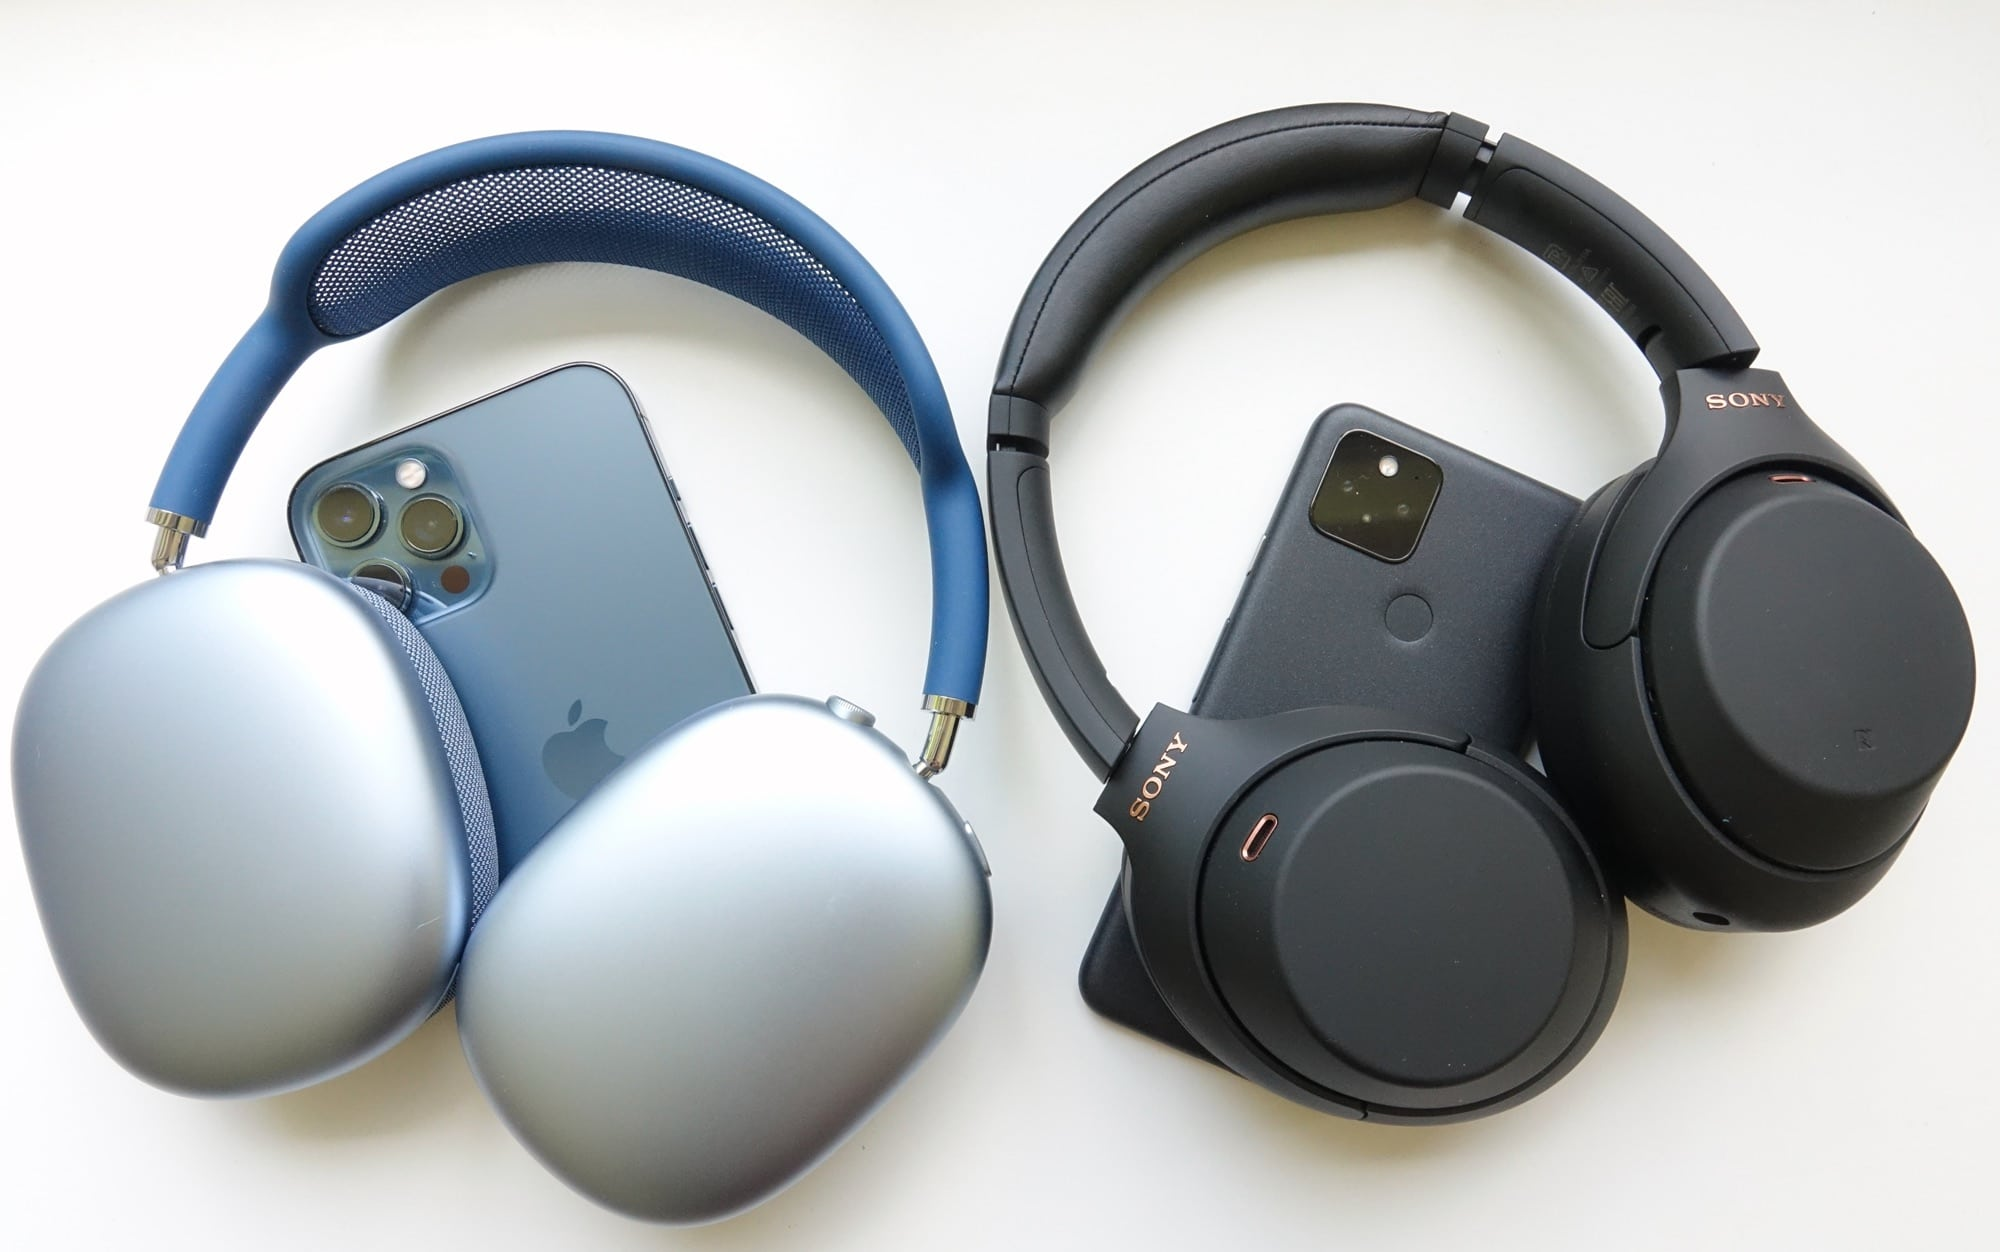 Apple AirPods Max vs Sony WH-1000XM4